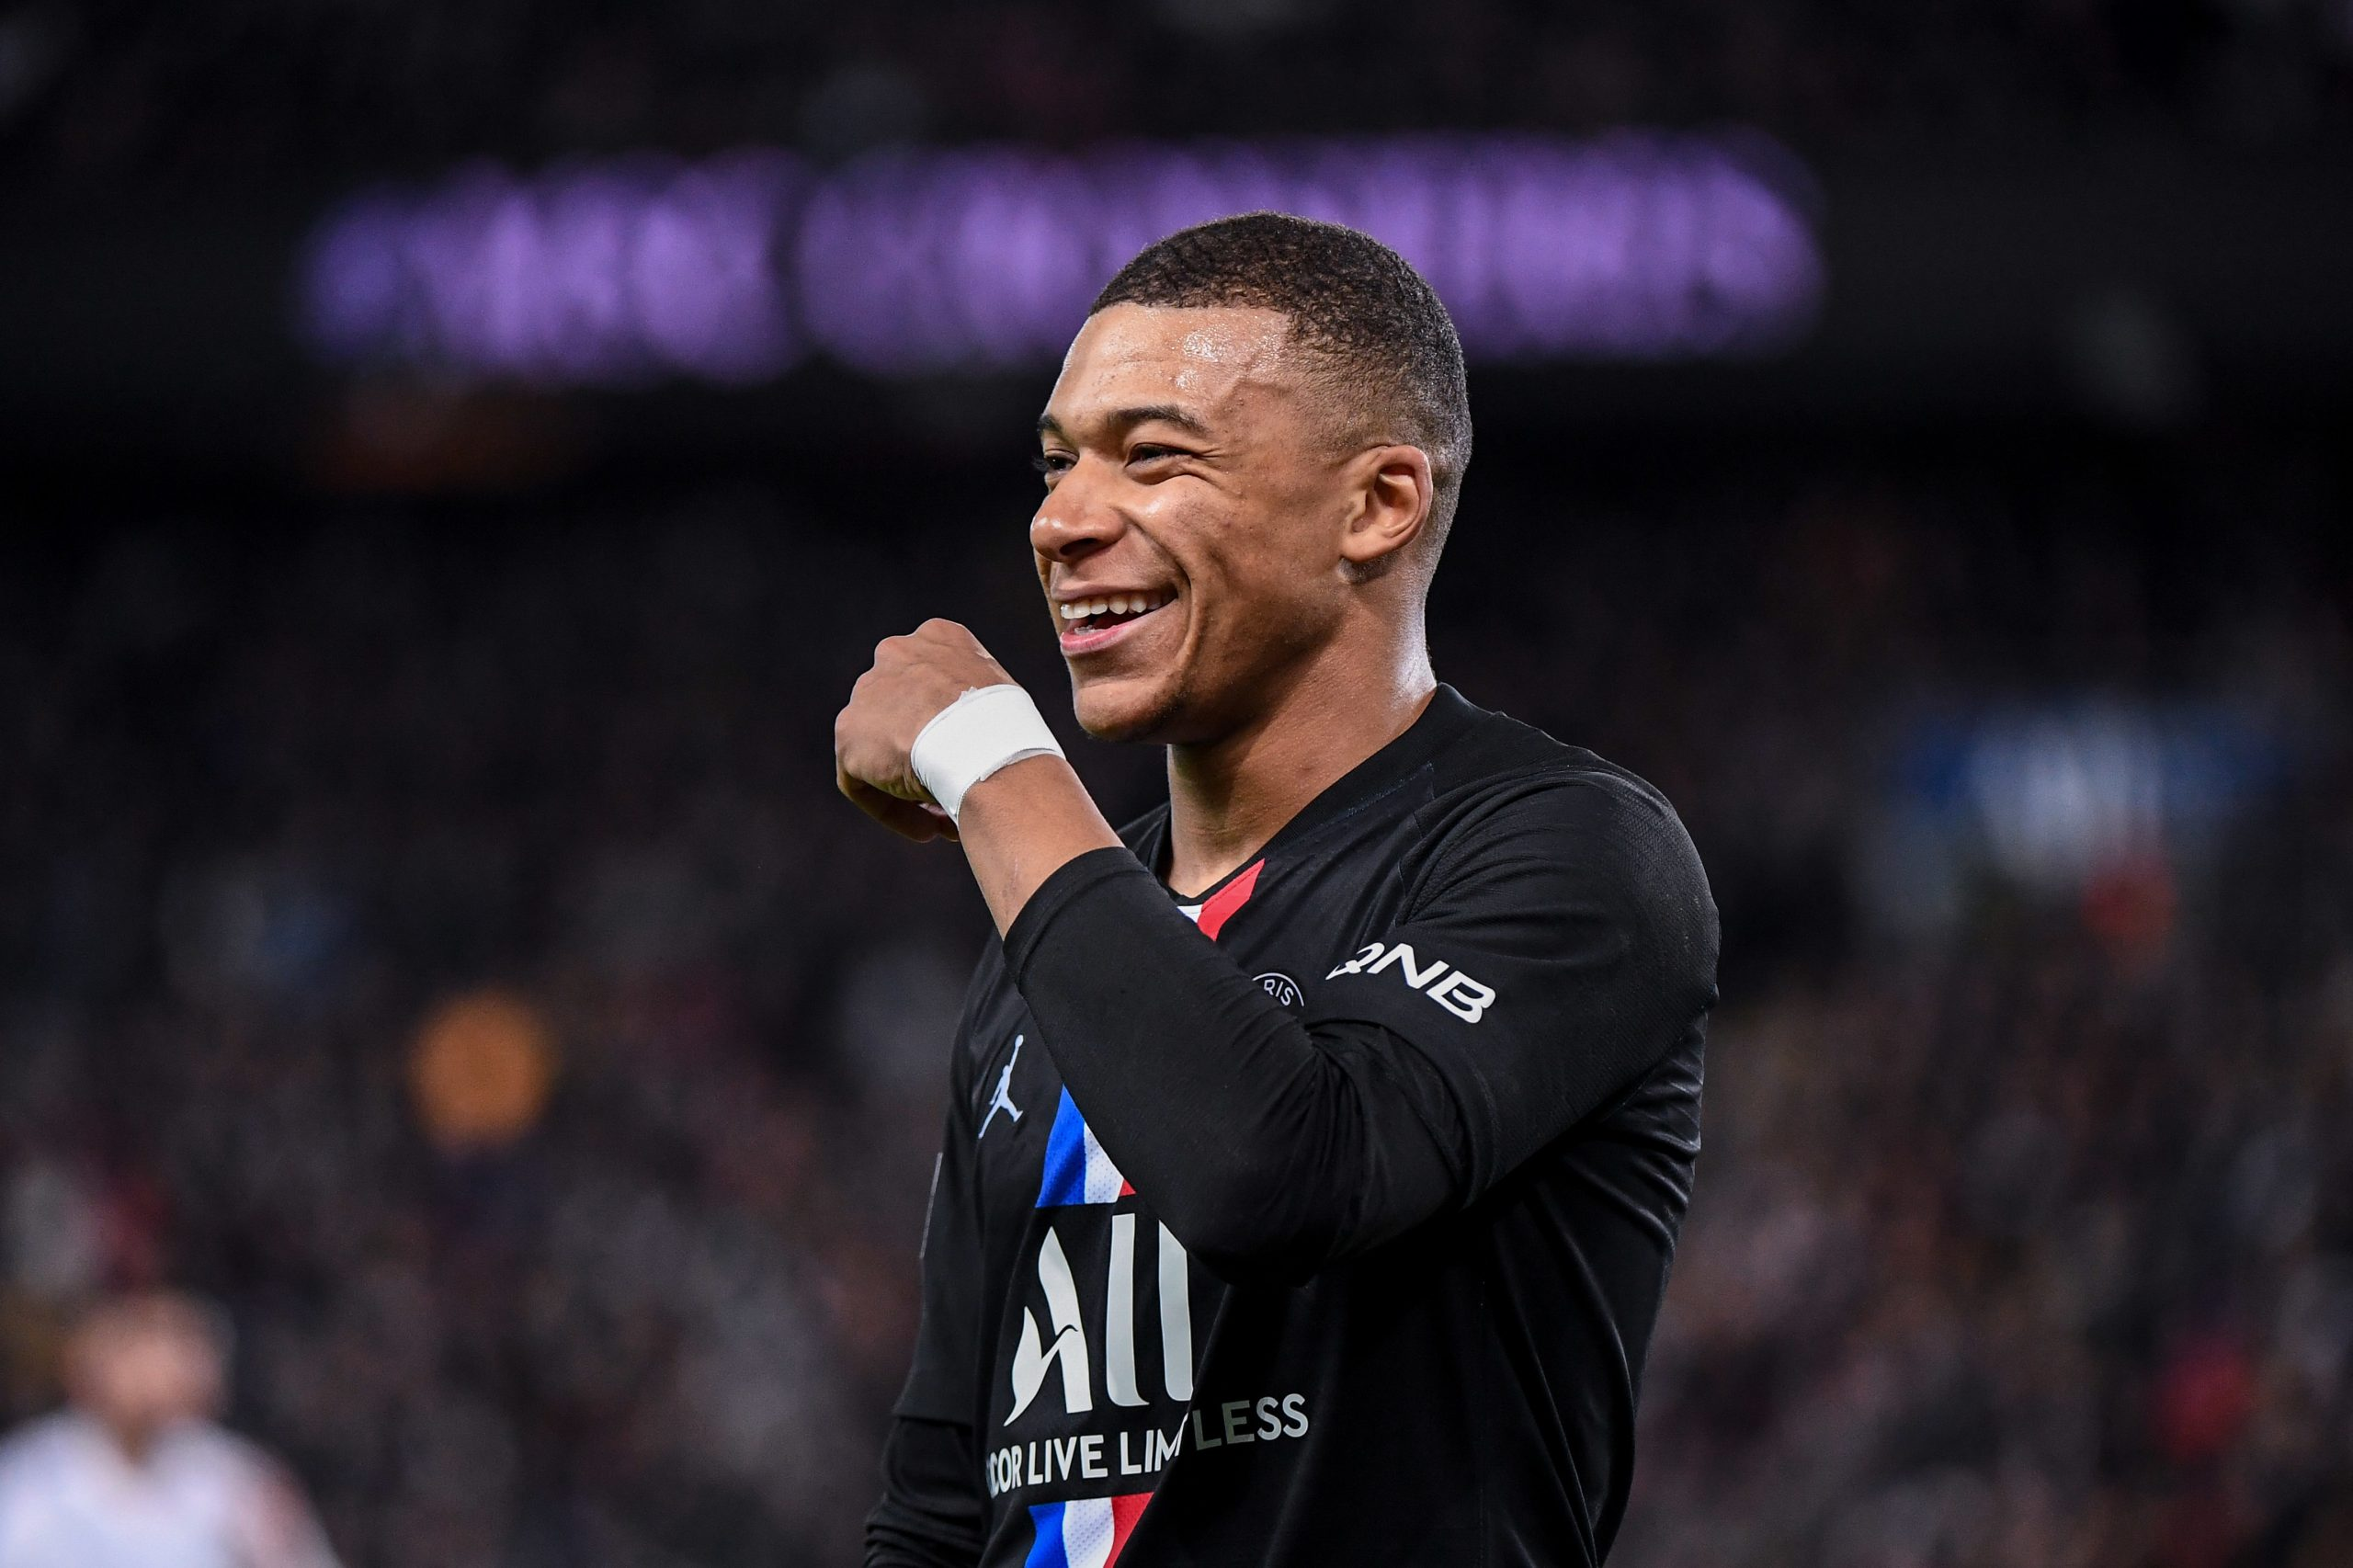 ParisFansMercato - Mbappé pourrait prolonger au PSG, mais le Real Madrid n'abandonnera pas selon AS